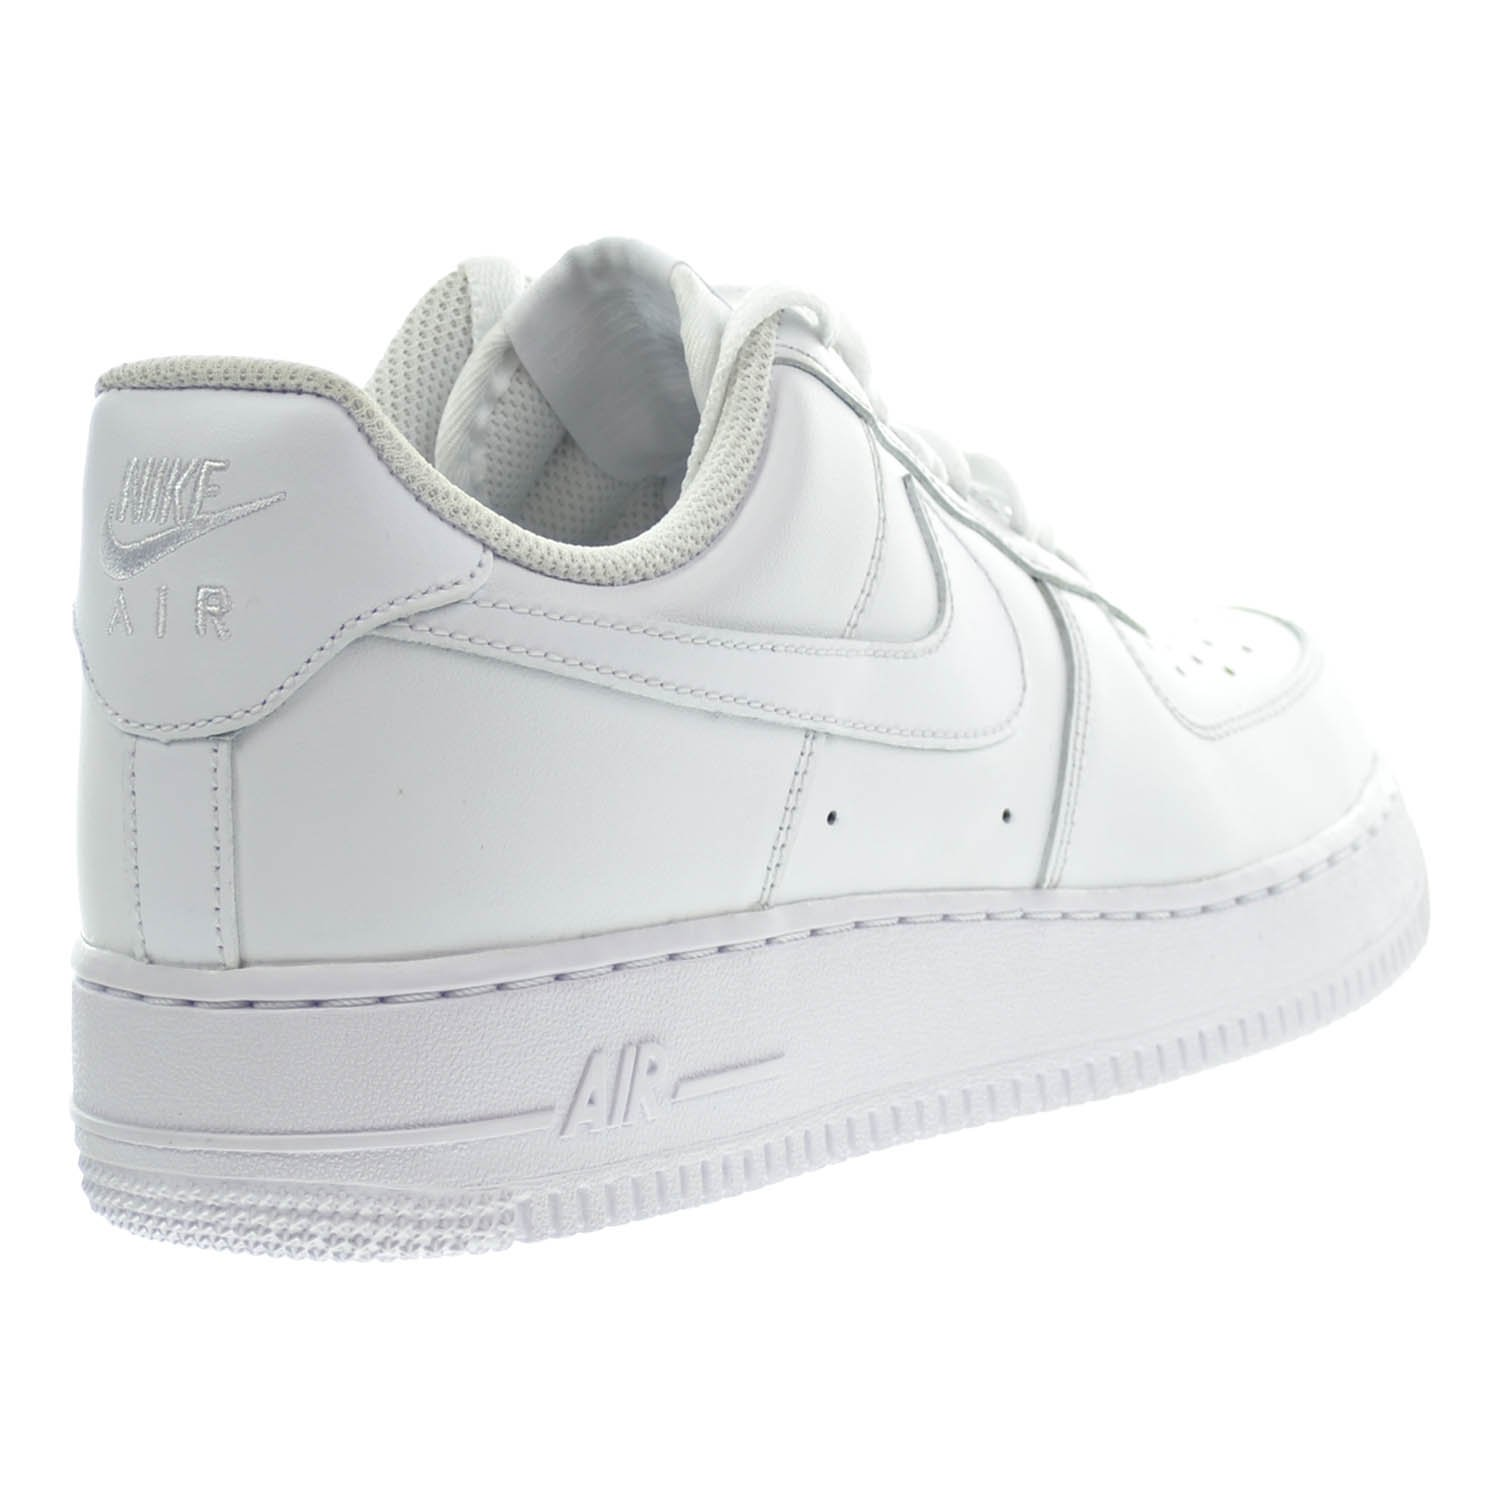 AIR Force 1 '07 NikeLab 'EXTRA Crotit' 'Off - Weiß 'EXTRA Crotit'' - 'Off 315122-111 - Größe 12.5-US & 47-EU 436fd5